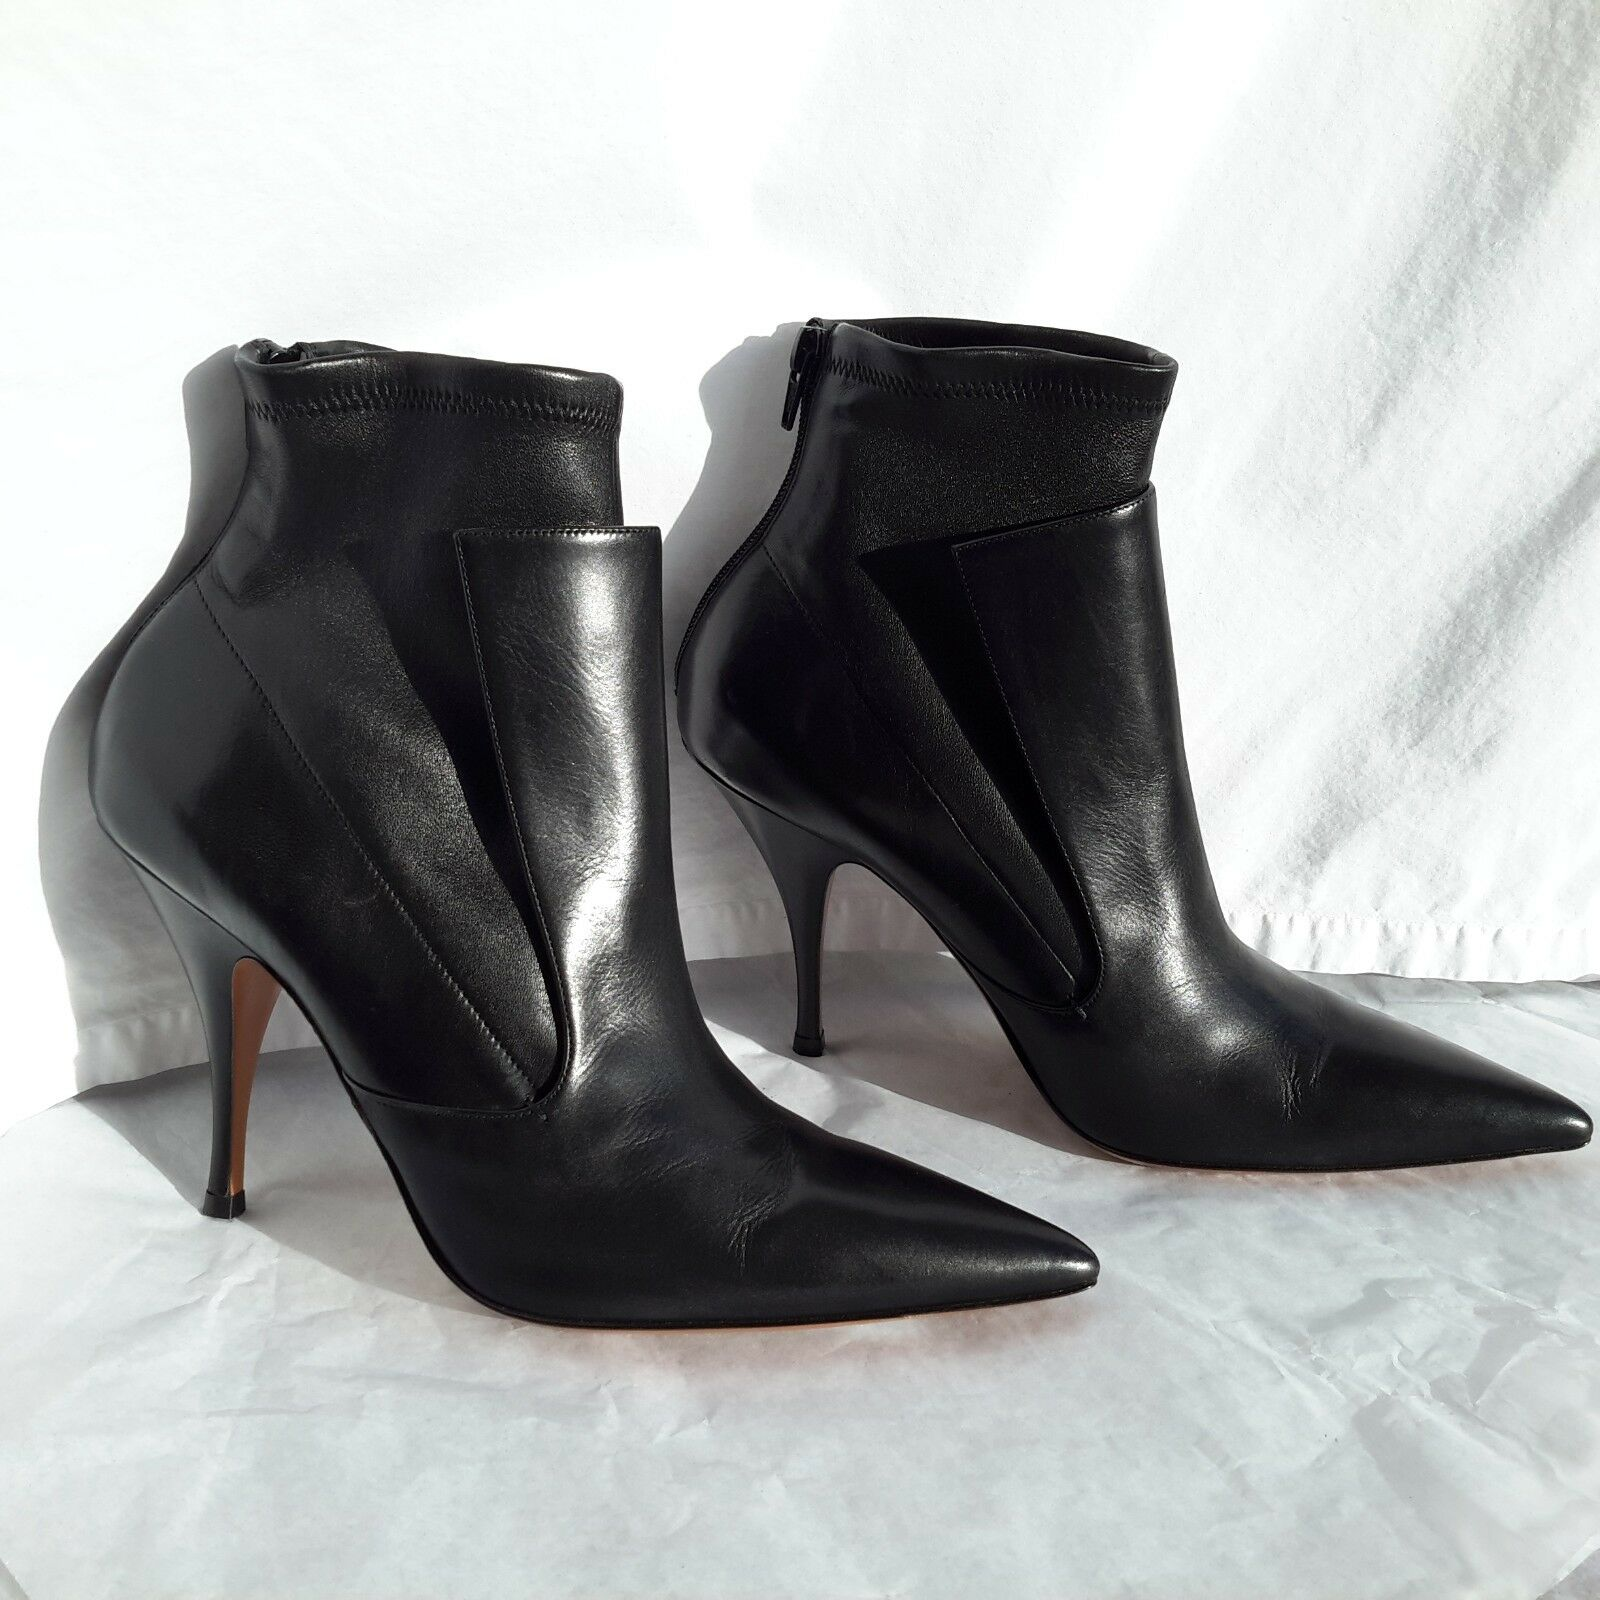 NWT Givenchy Black Leather Medium Heel Height Booties Size 40EU(10US) Orig.1095